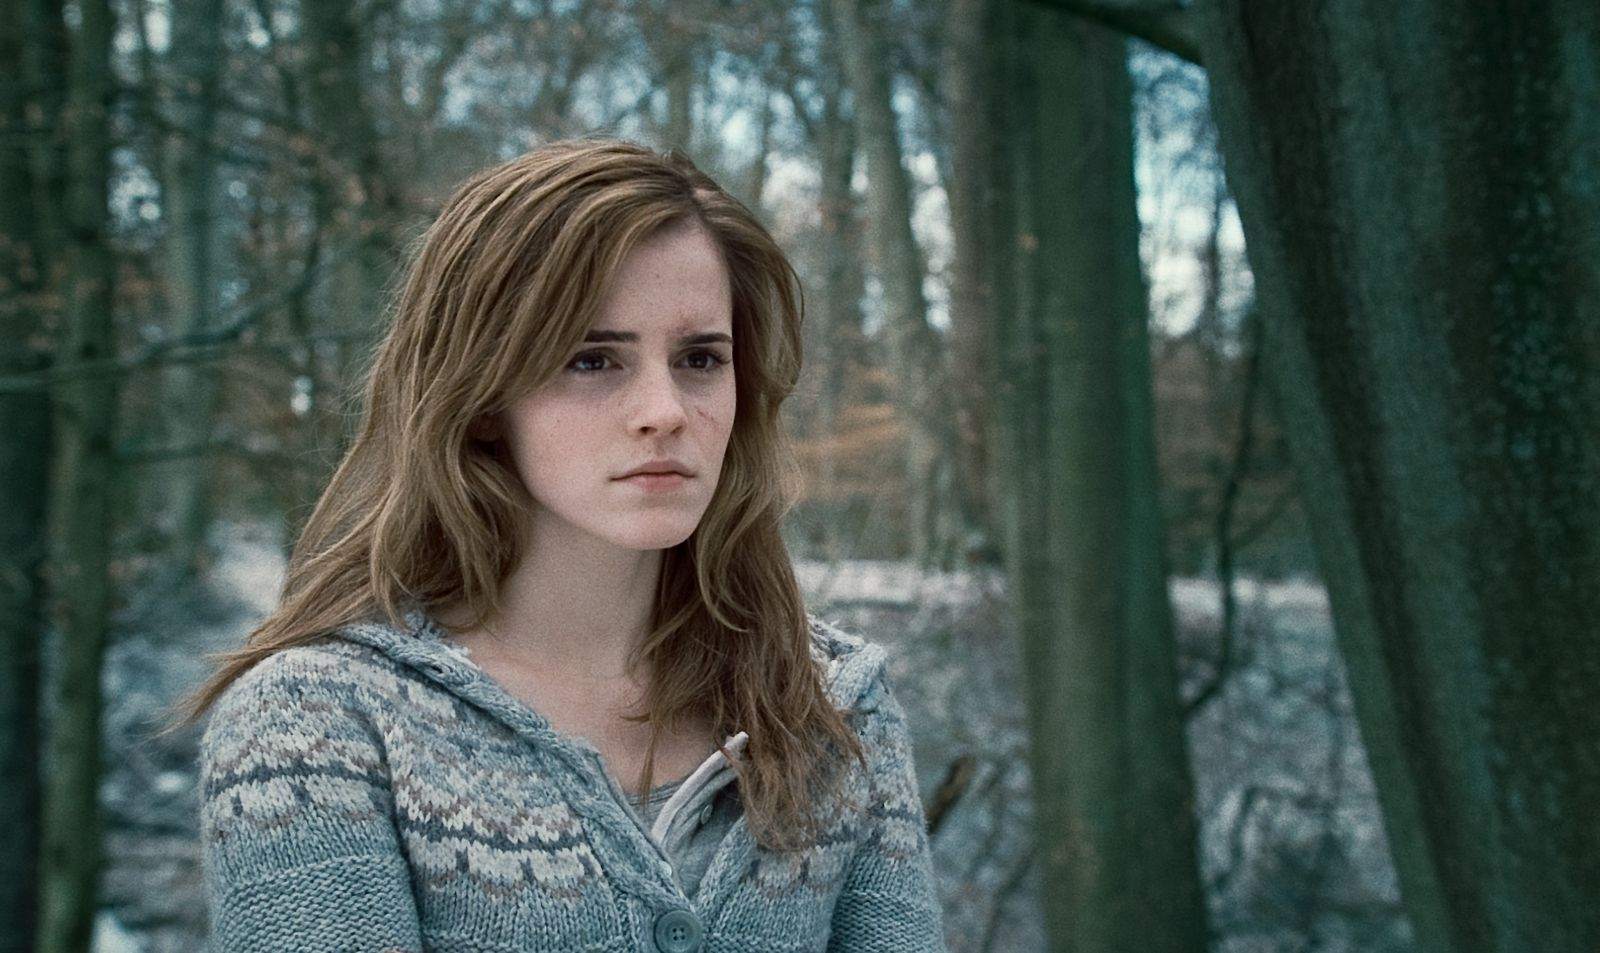 harry potter essay deathly hallows Hp_essays is a community dedicated to essays, discussion and analysis of the harry potter books and movies  deathly hallows goblet of fire half-blood prince.